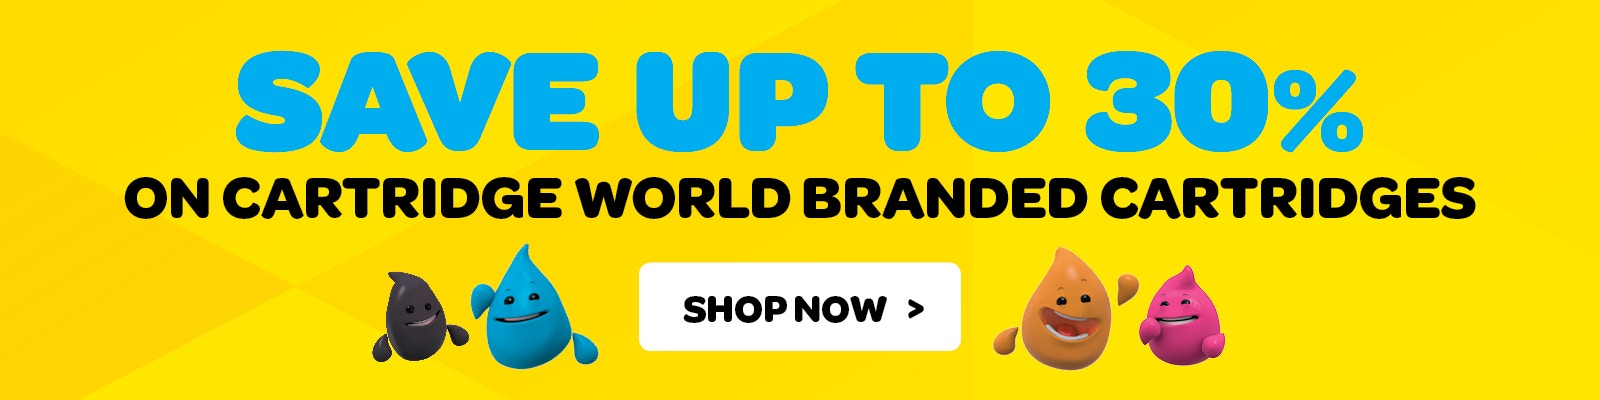 Save 30% on all Cartridge World Branded Products